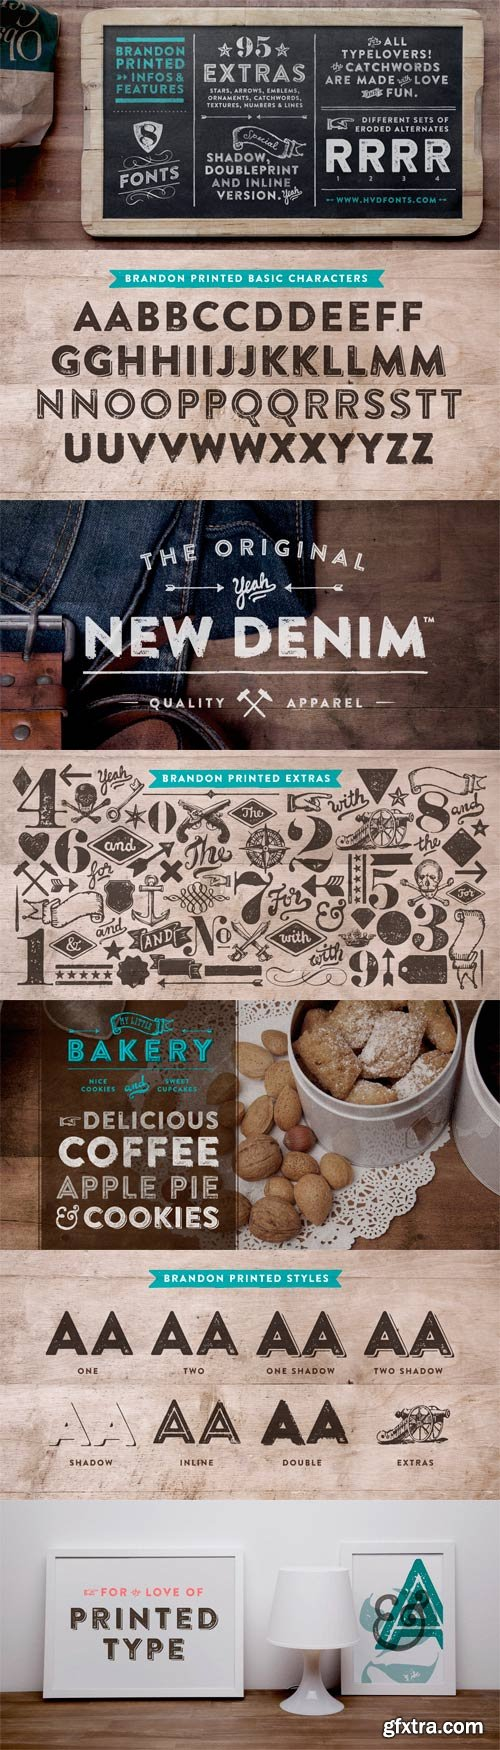 Brandon Printed Font Family - 8 Fonts For $99